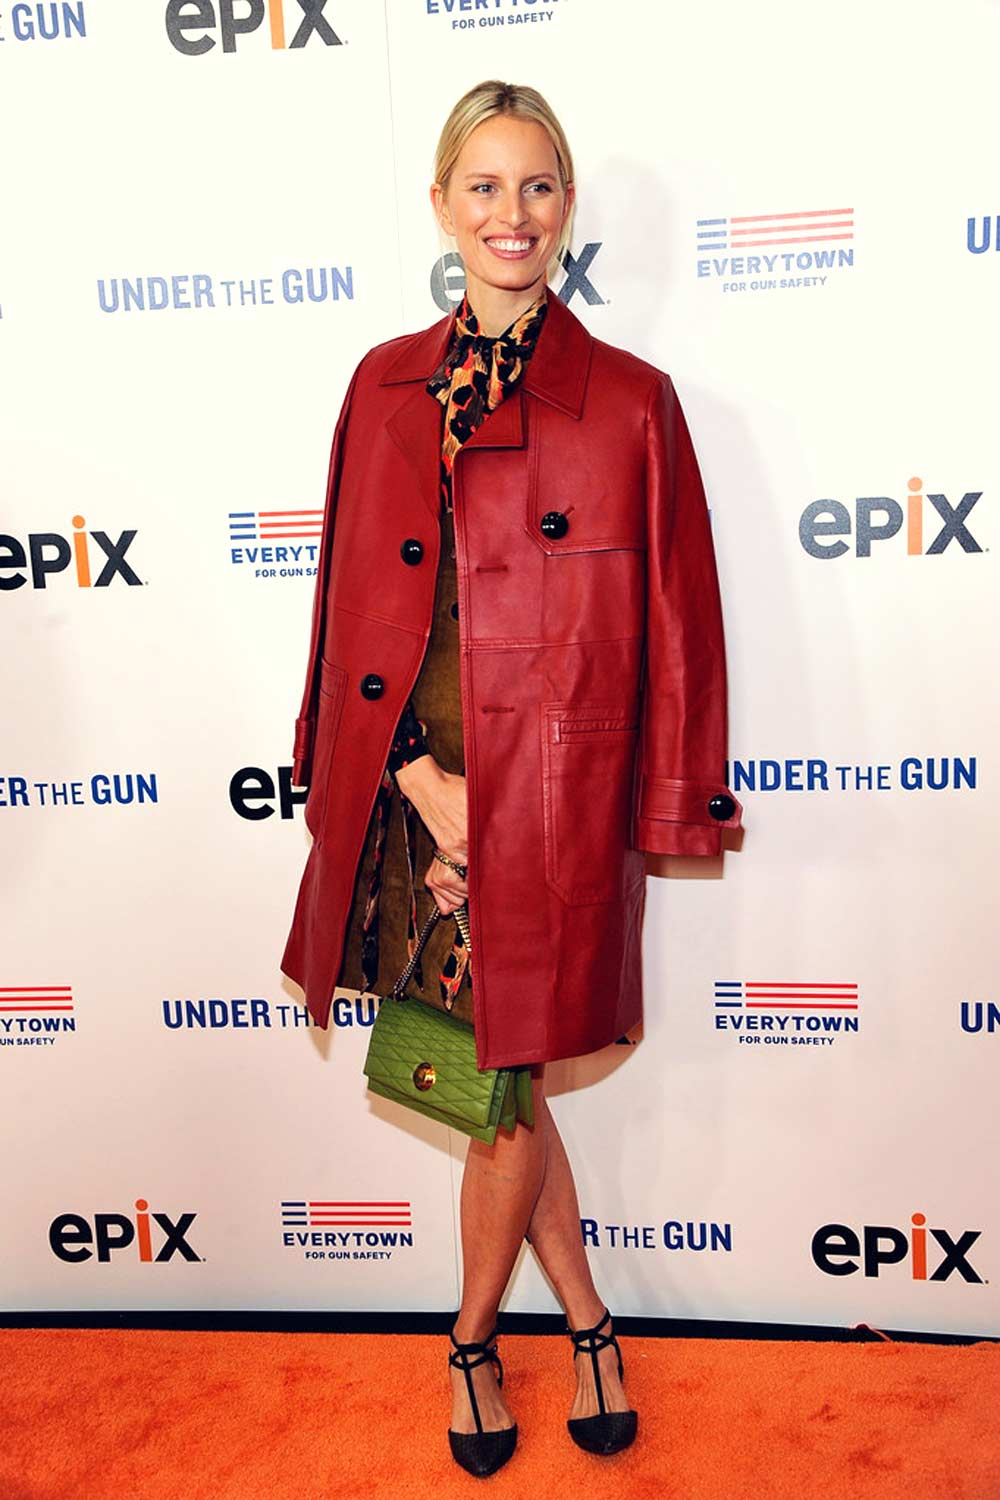 Karolina Kurkova attends the premiere of Under the Gun